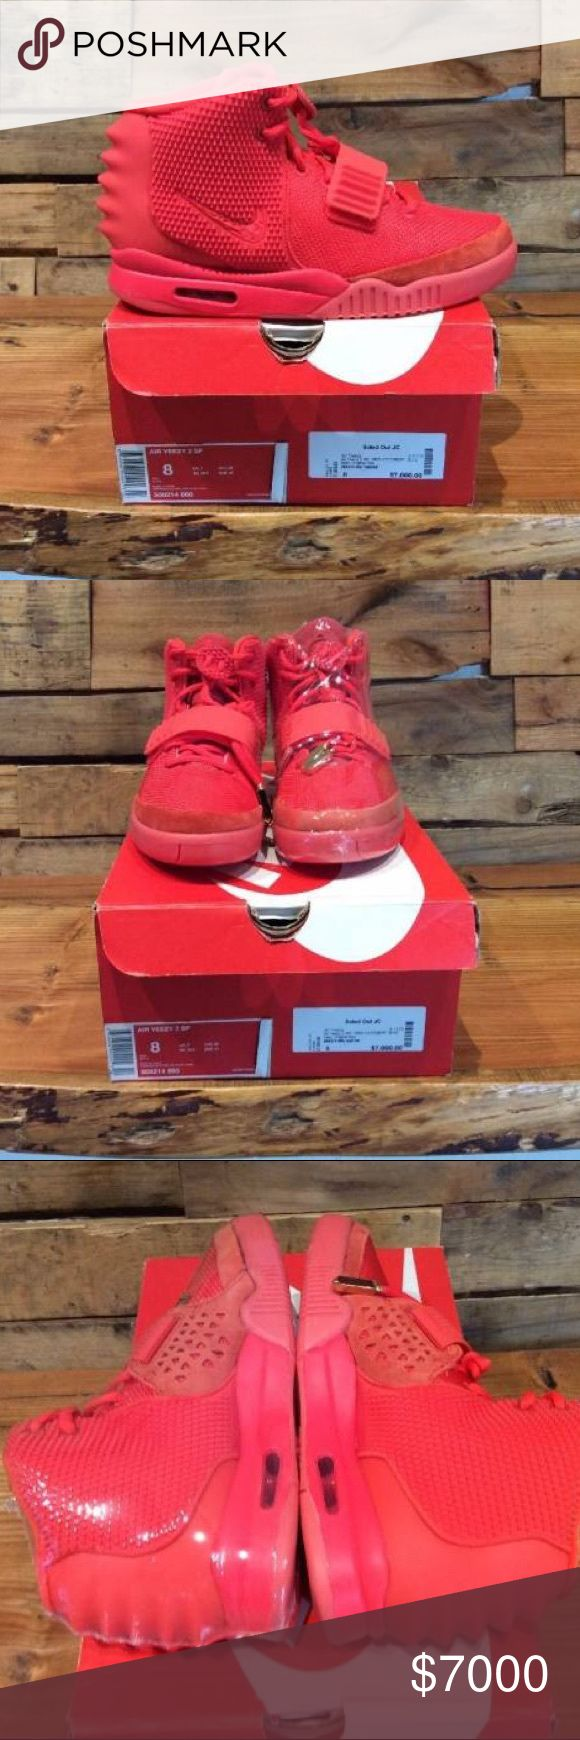 "Nike Air Yeezy 2 SP ""Red October"" 100% authentic ships 1-2 days Via FedEx Express Yeezy Shoes Athletic Shoes"